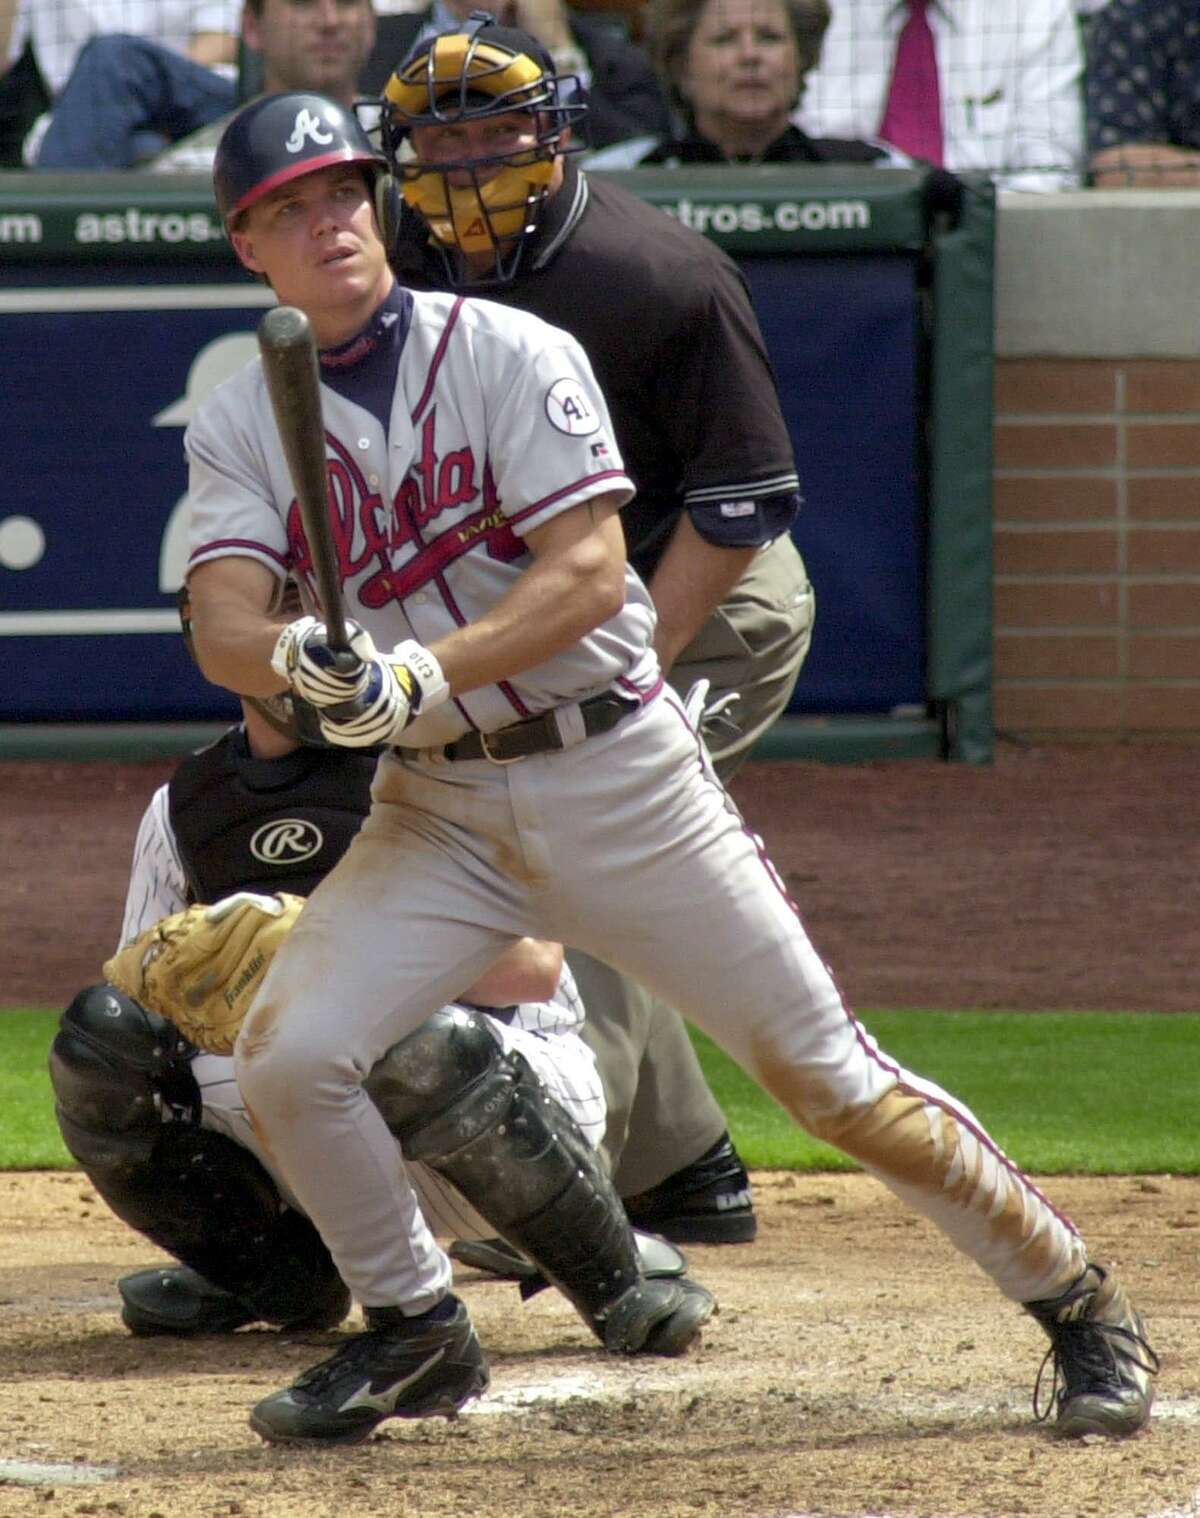 Former Atlanta Braves third baseman Chipper Jones is one of six players David Borges including on his BBWAA Hall of Fame ballot this year.